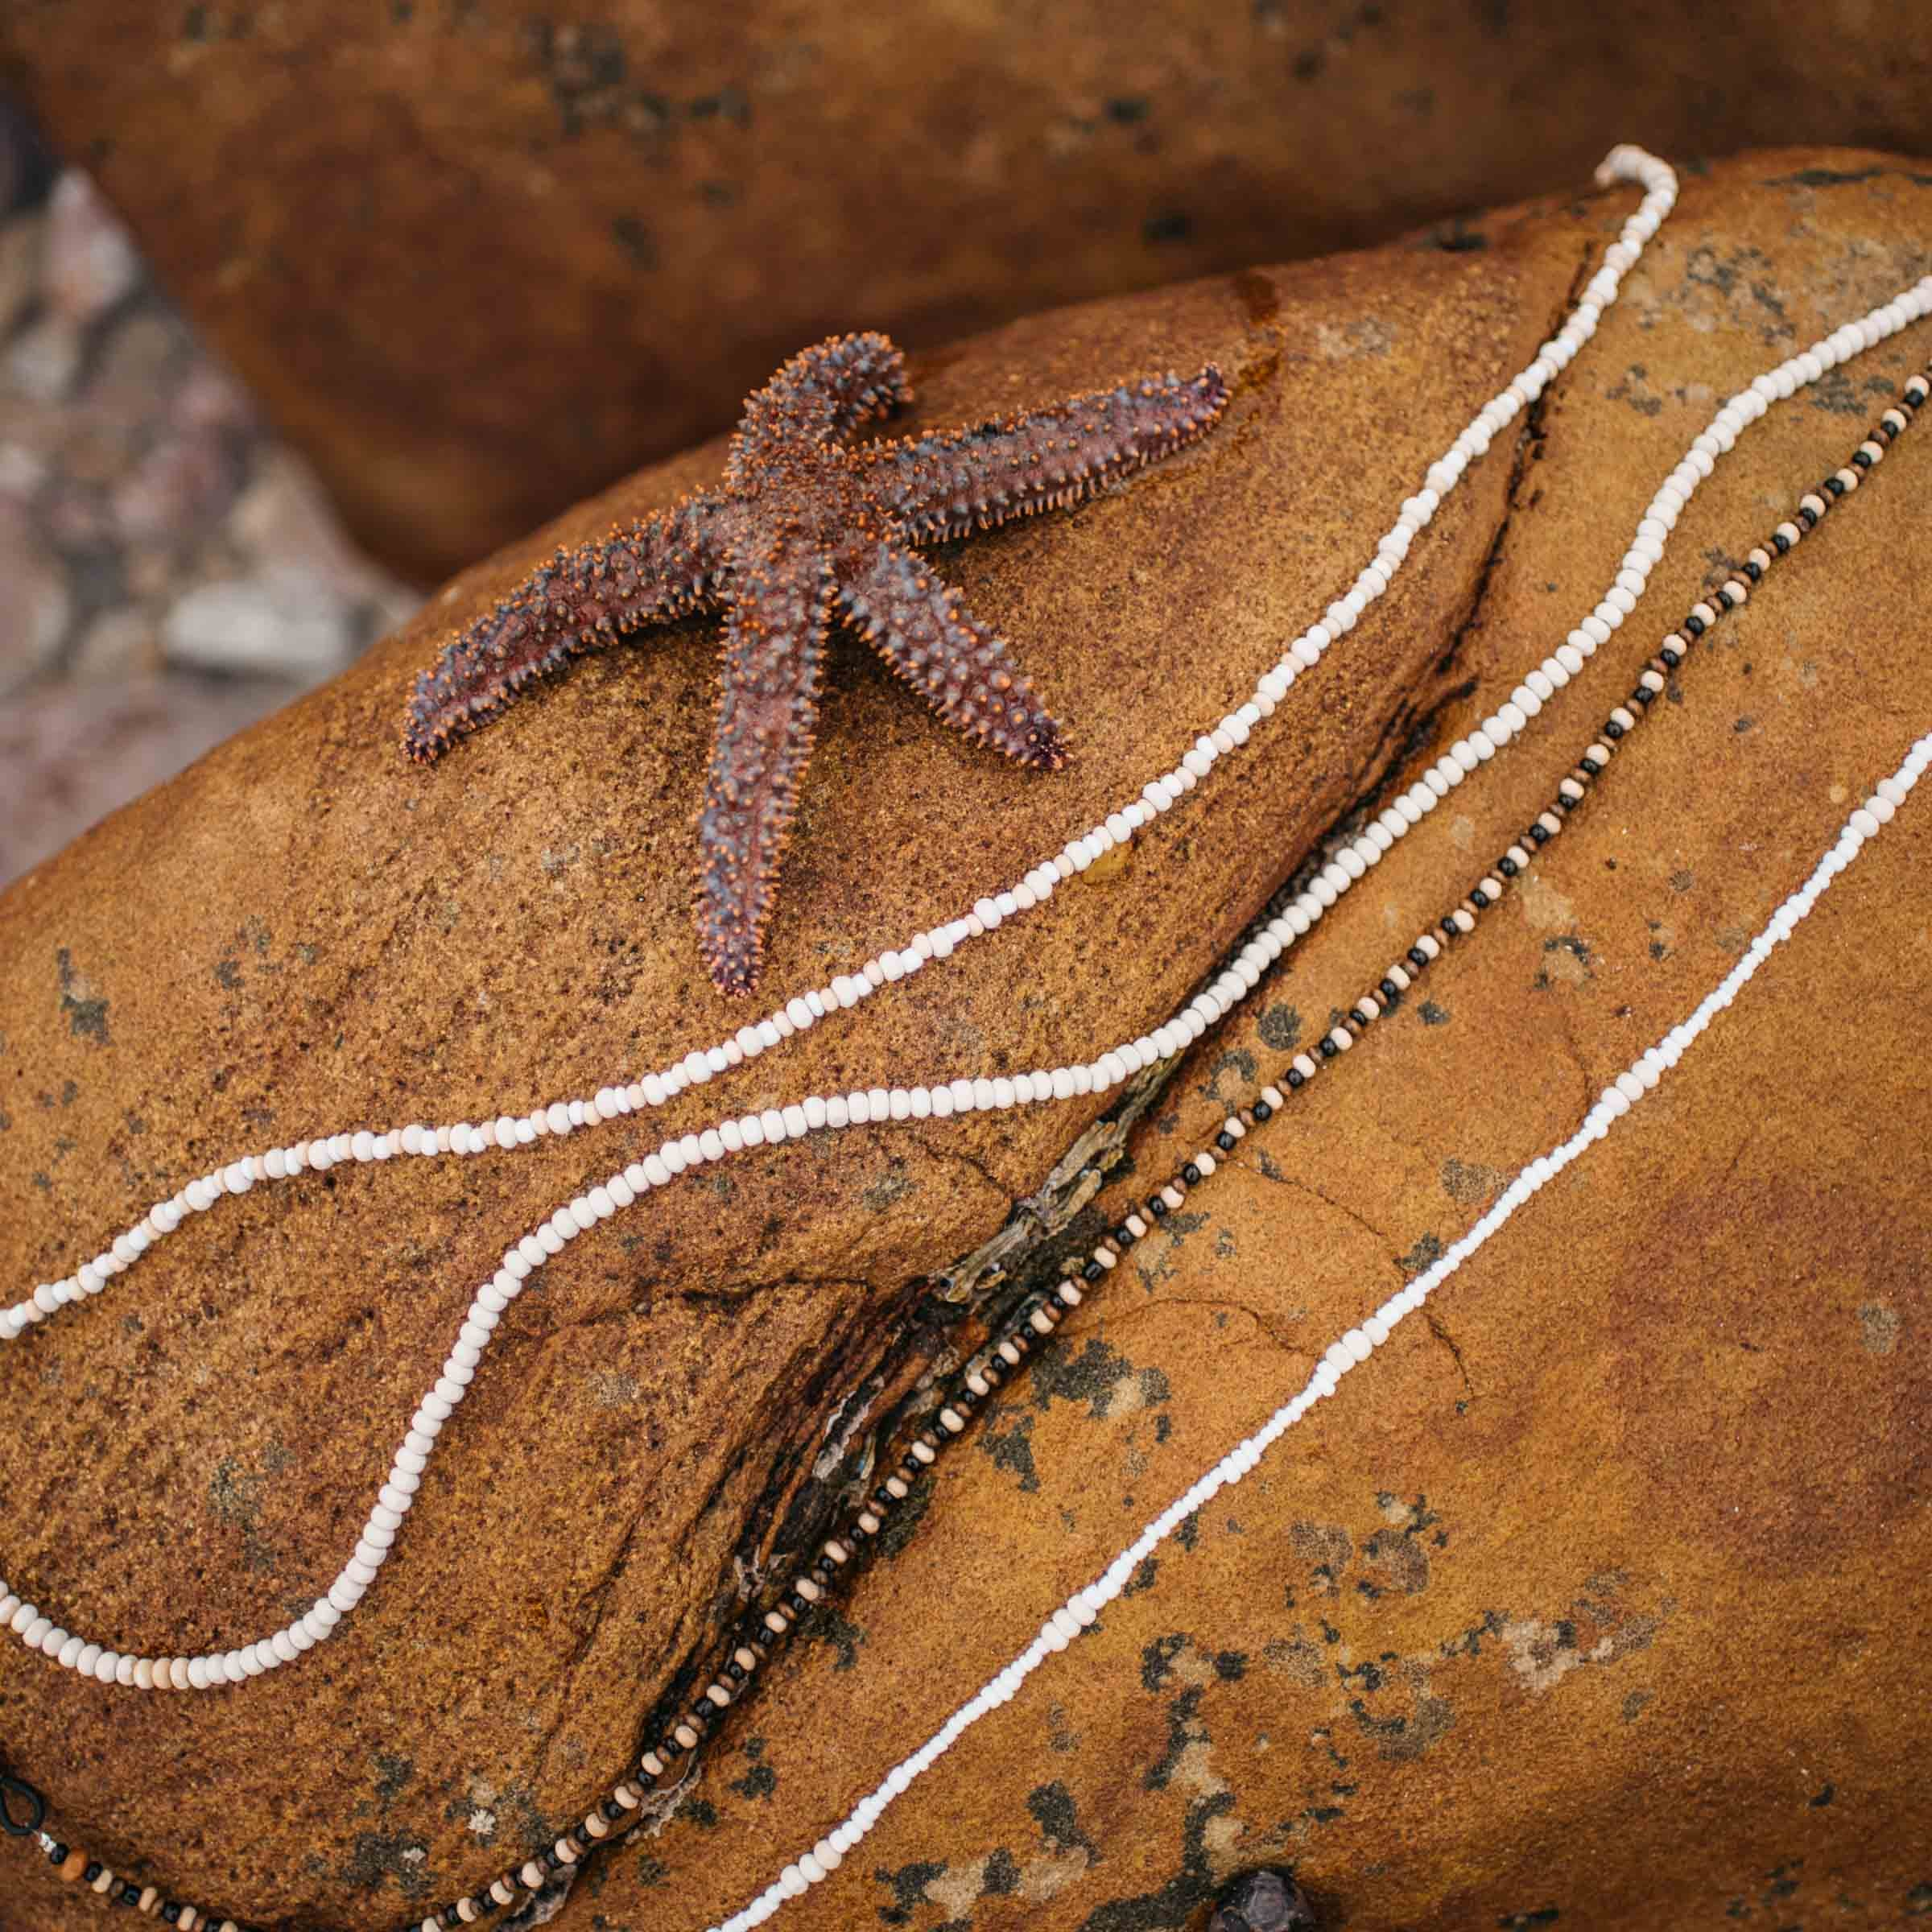 Sunglasses Strap/Cord • Sand & Coral - Stokedthebrand. Lifestyle products for outdoor adventures. Made in South Africa